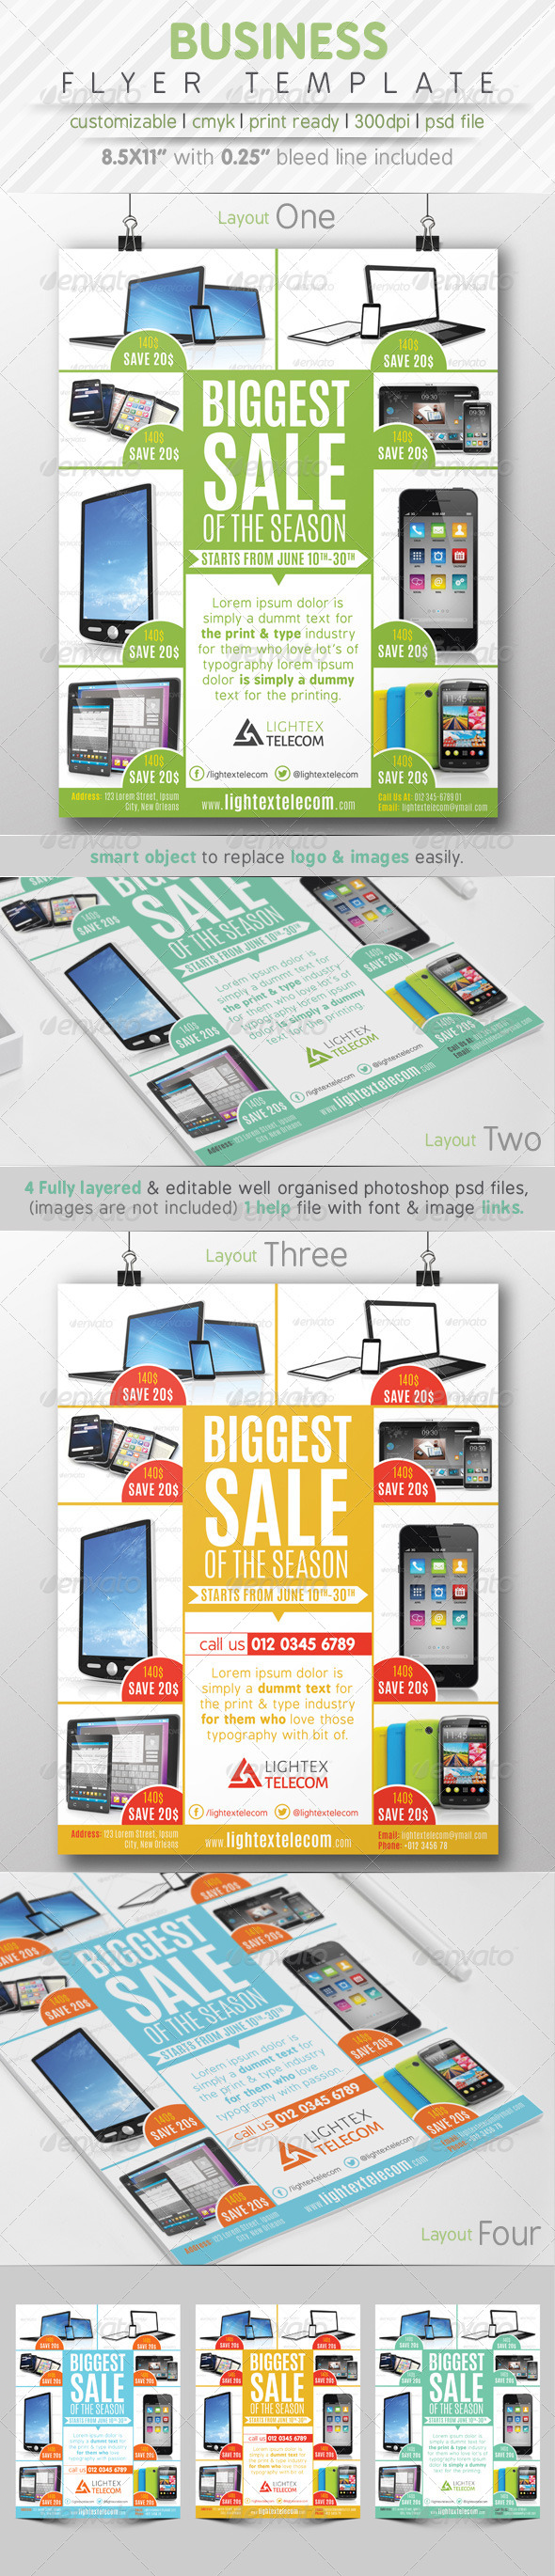 GraphicRiver Business Flyer Template 7782014